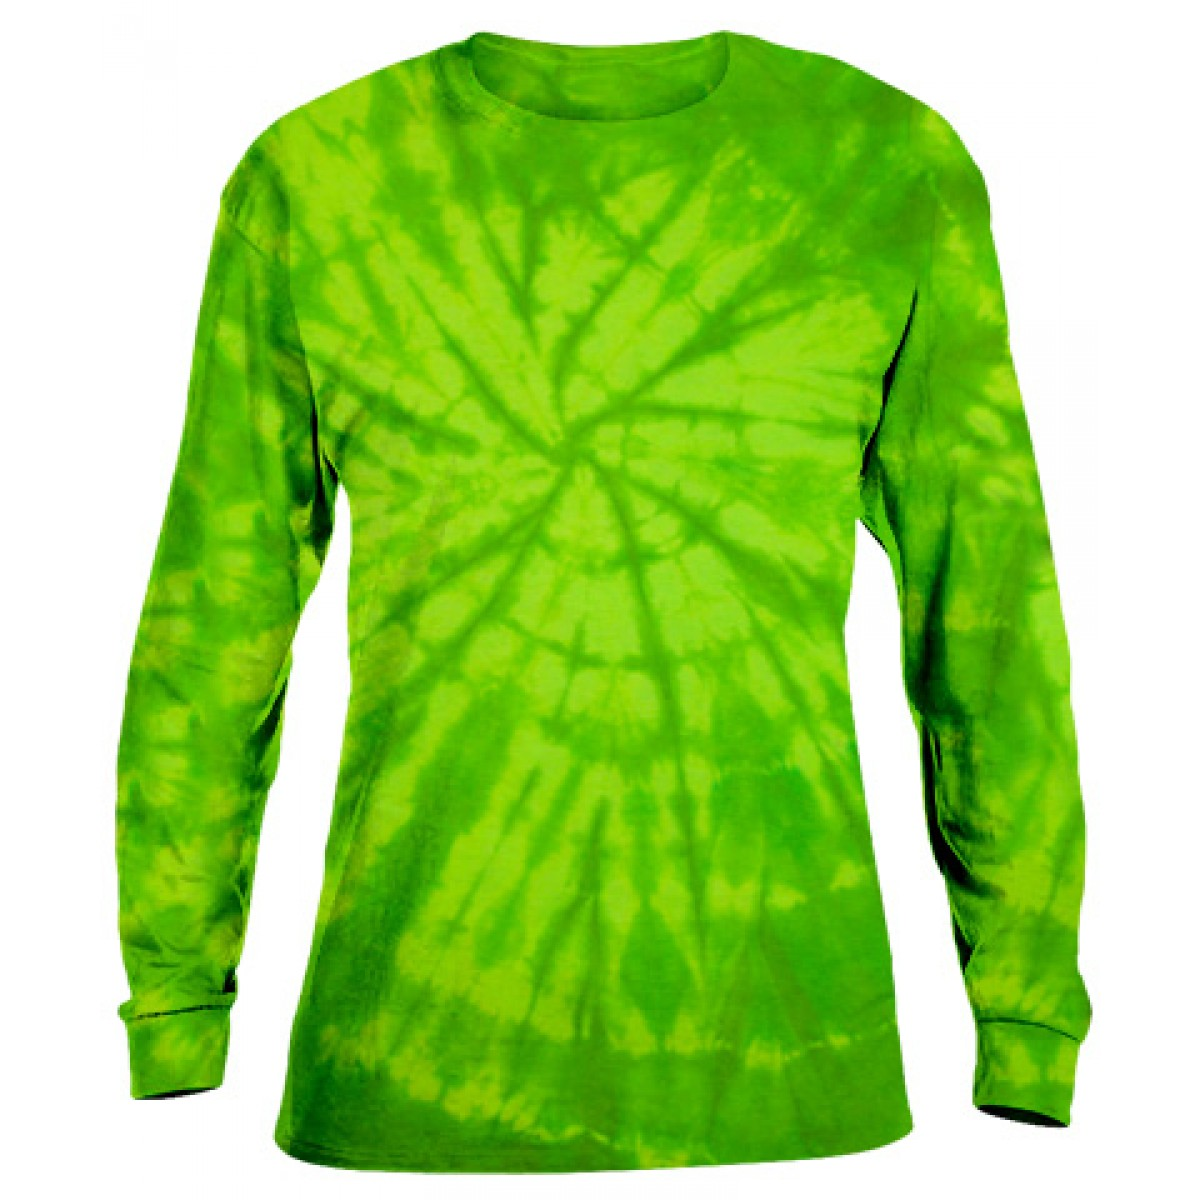 Tie-Dye Long Sleeve Shirt -Lime Green-YS